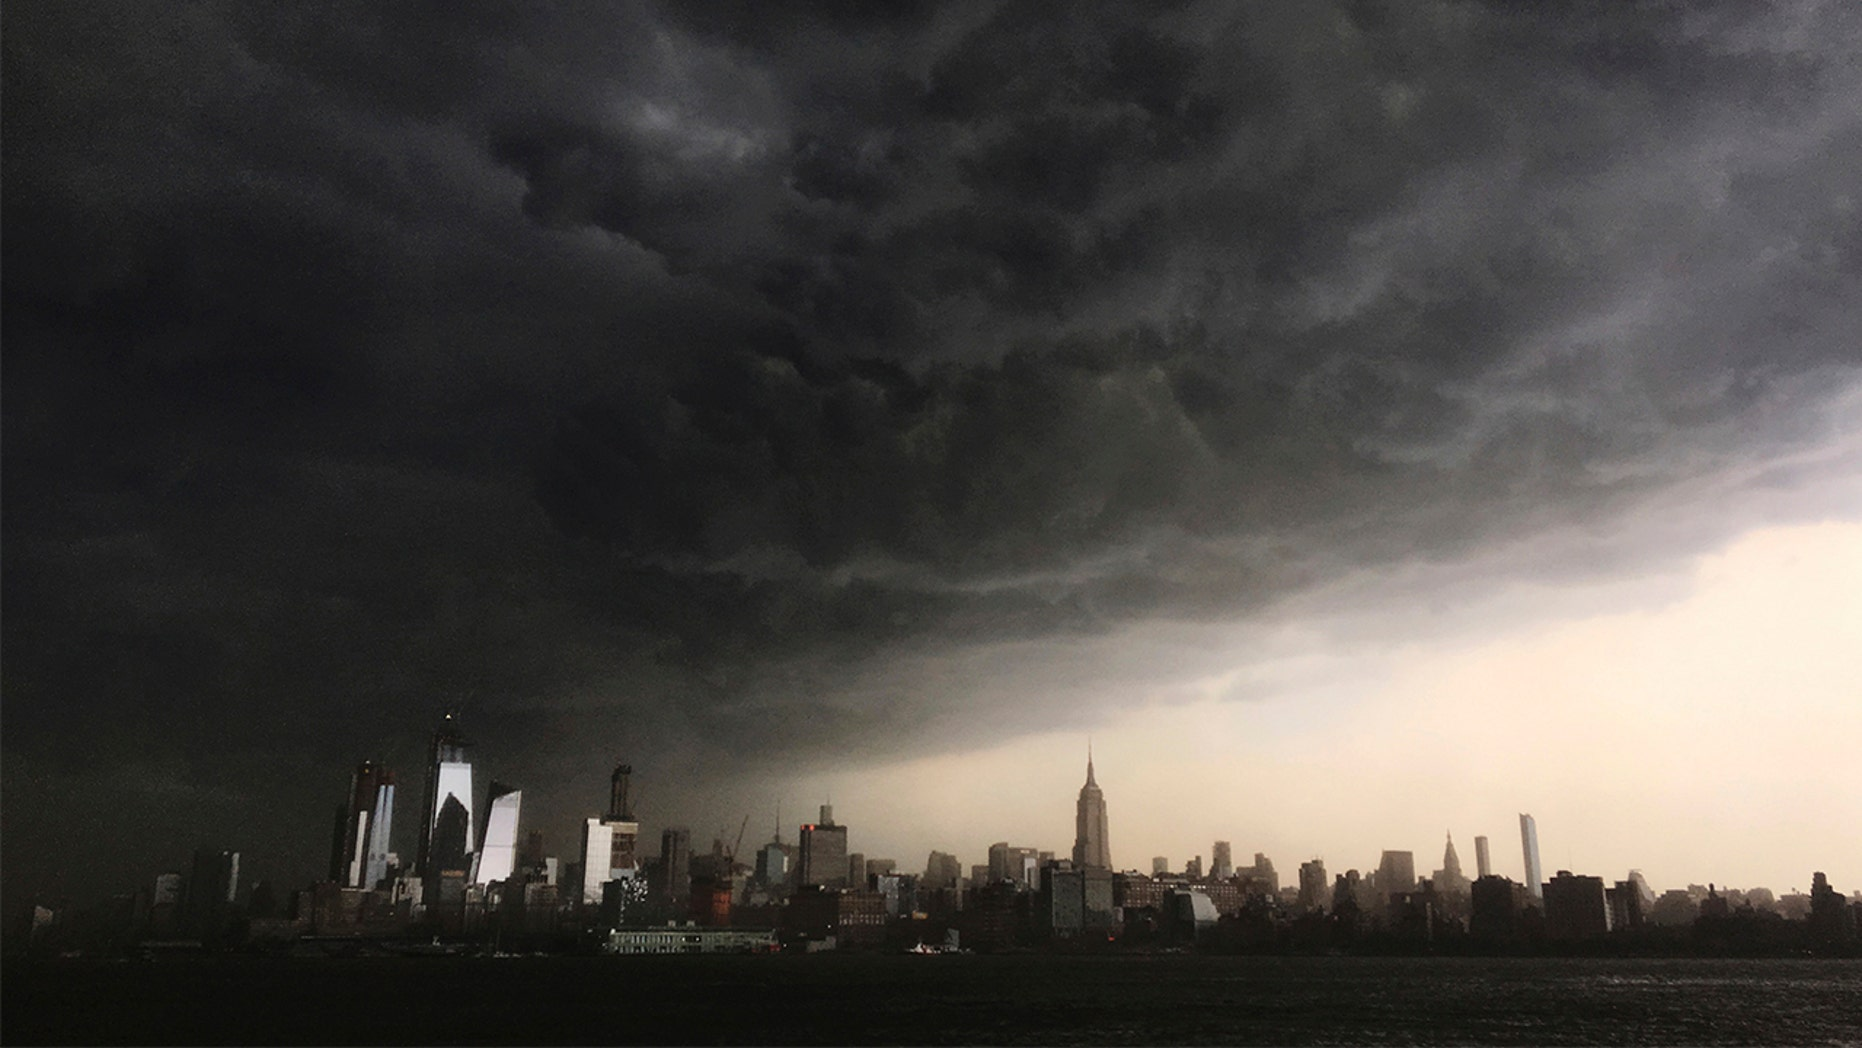 File photo: Storm clouds seen gathering over New York City on May 15, 2018.